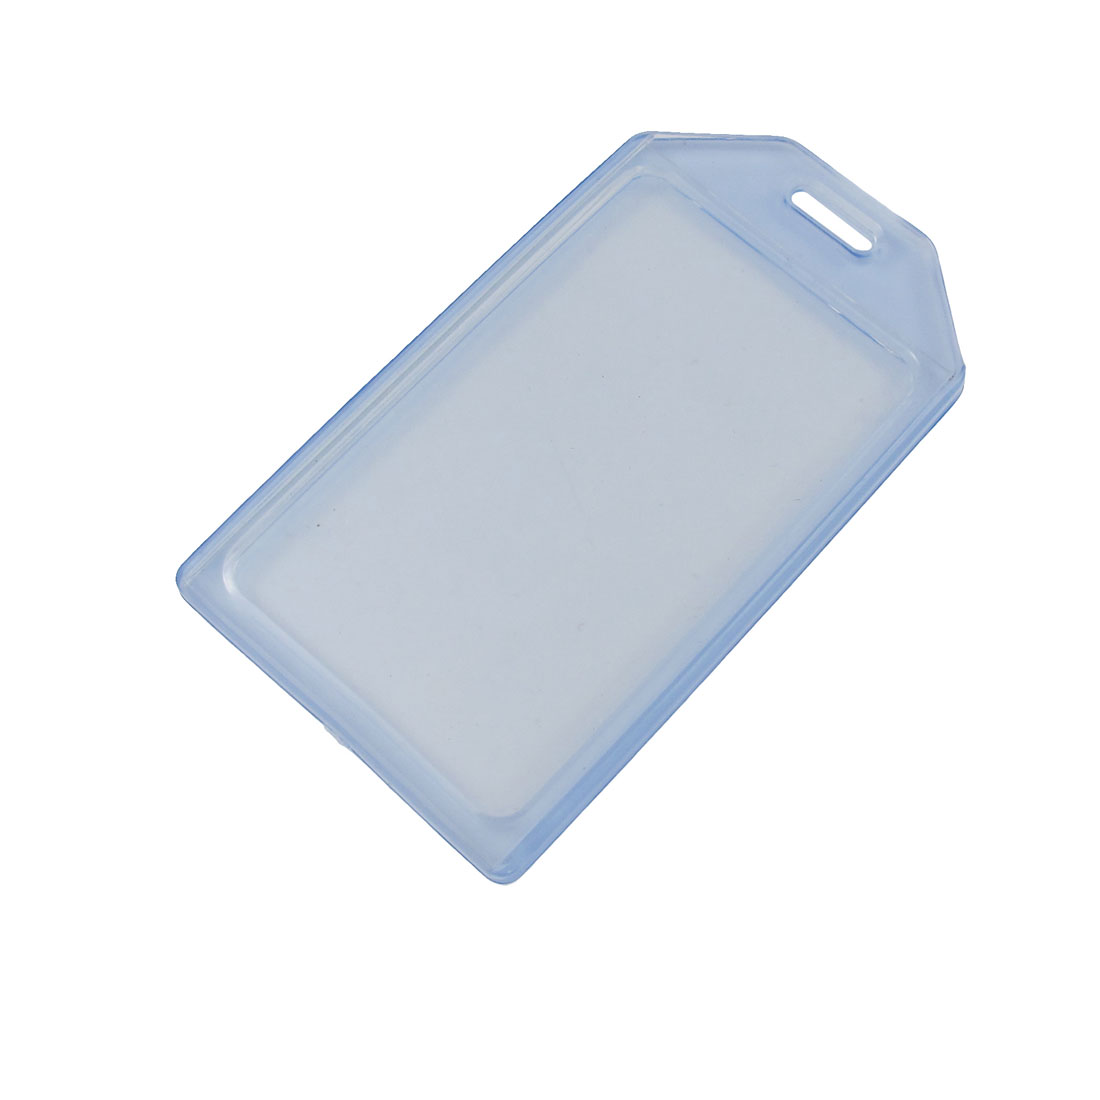 5 Pcs Soft Plastic Vertical Business ID Card Holder Clear Blue